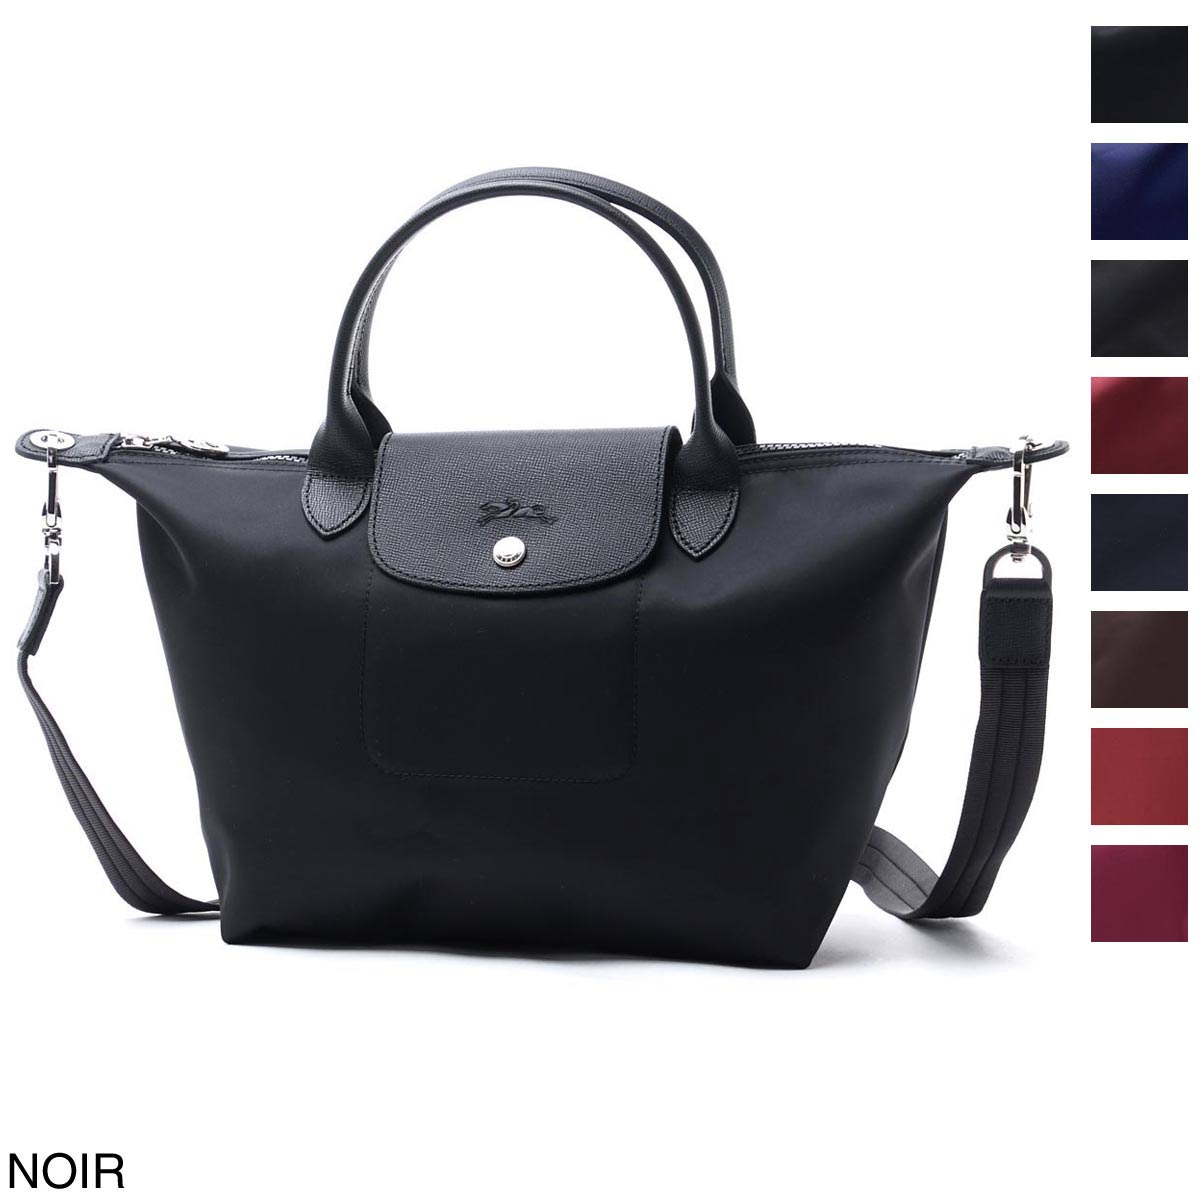 685528791b9a Longchamp LONGCHAMP handbag 2WAY Lady s black tote bag commuting light  weight 1512 578 001 Le Pliage le プリアージュネオ